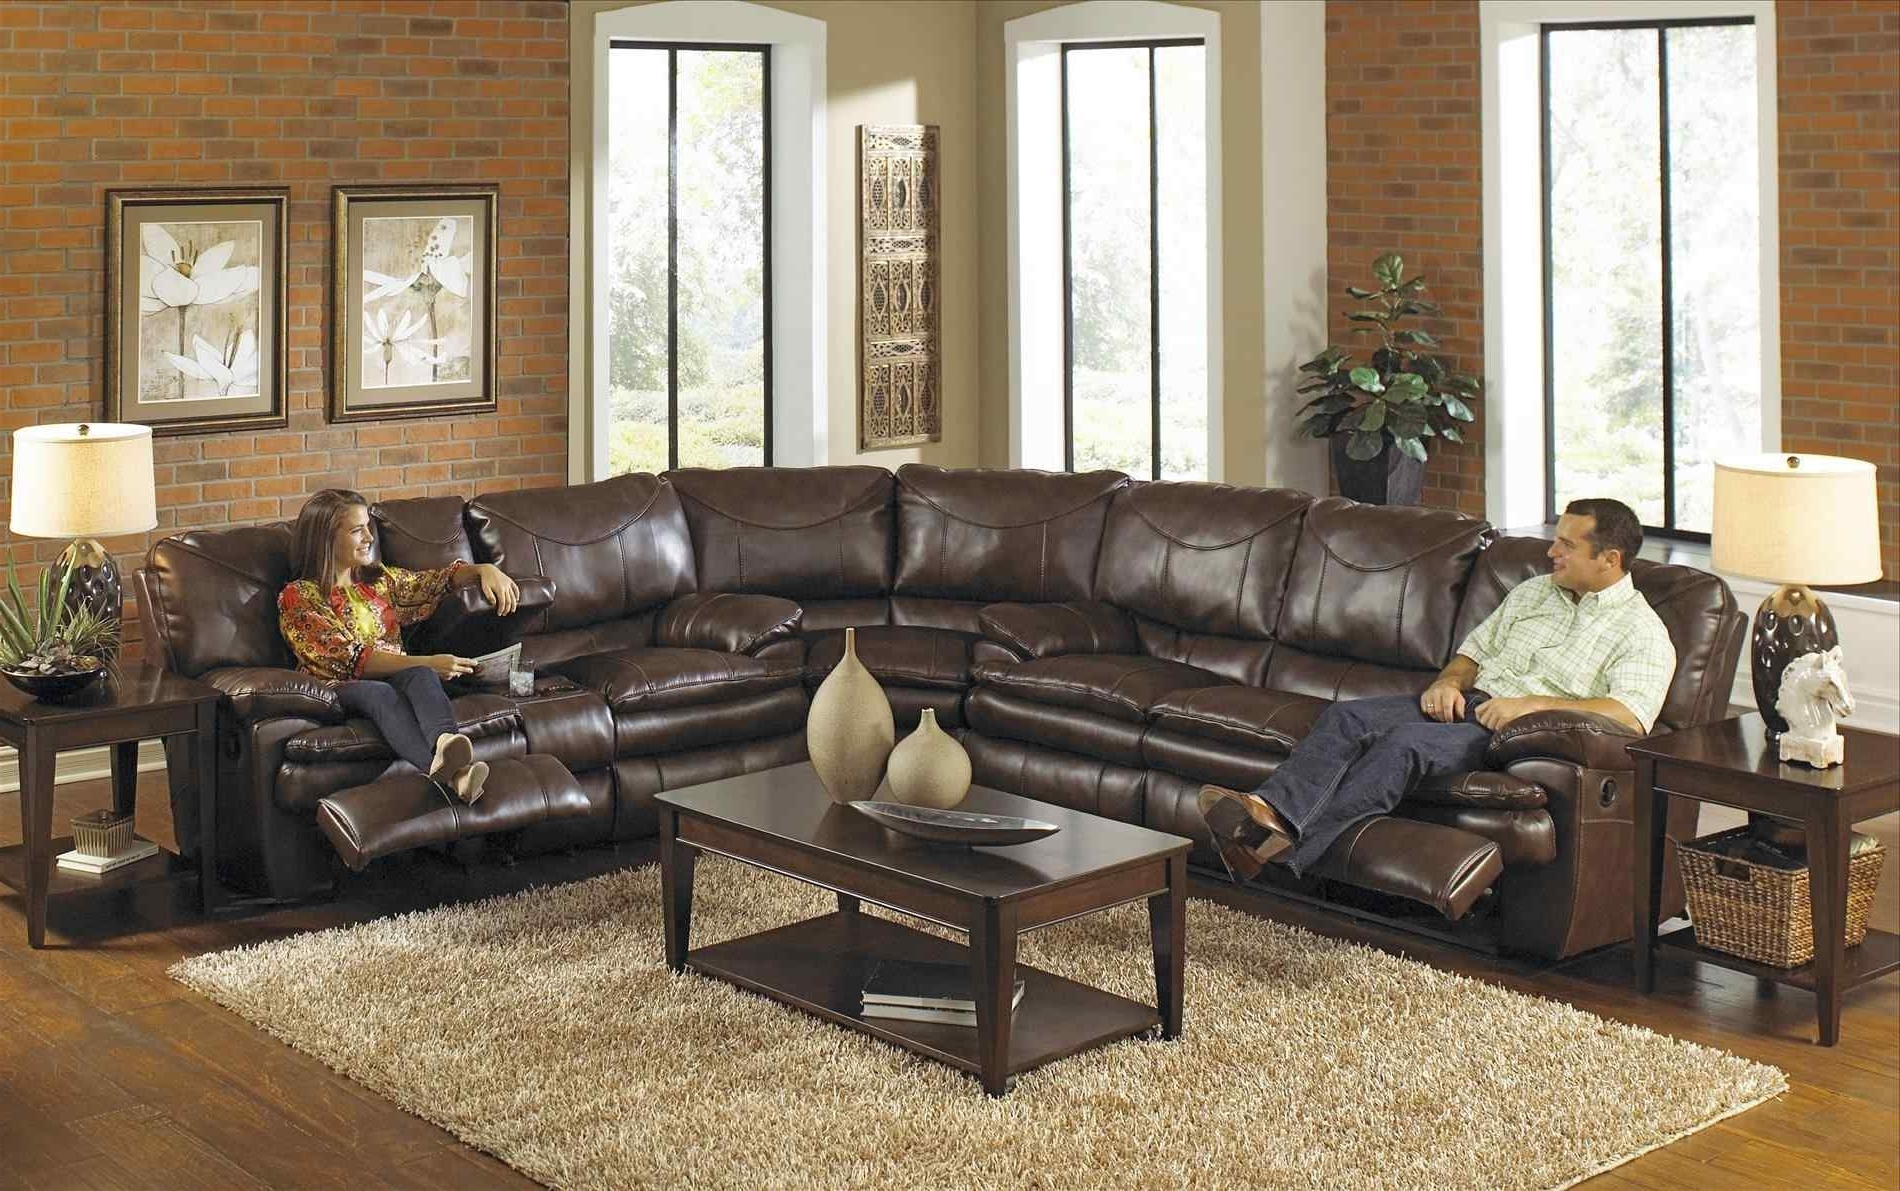 The Images Collection Of Concord Sectional Price Leather Furniture Intended For 2019 Thomasville Sectional Sofas (View 11 of 20)